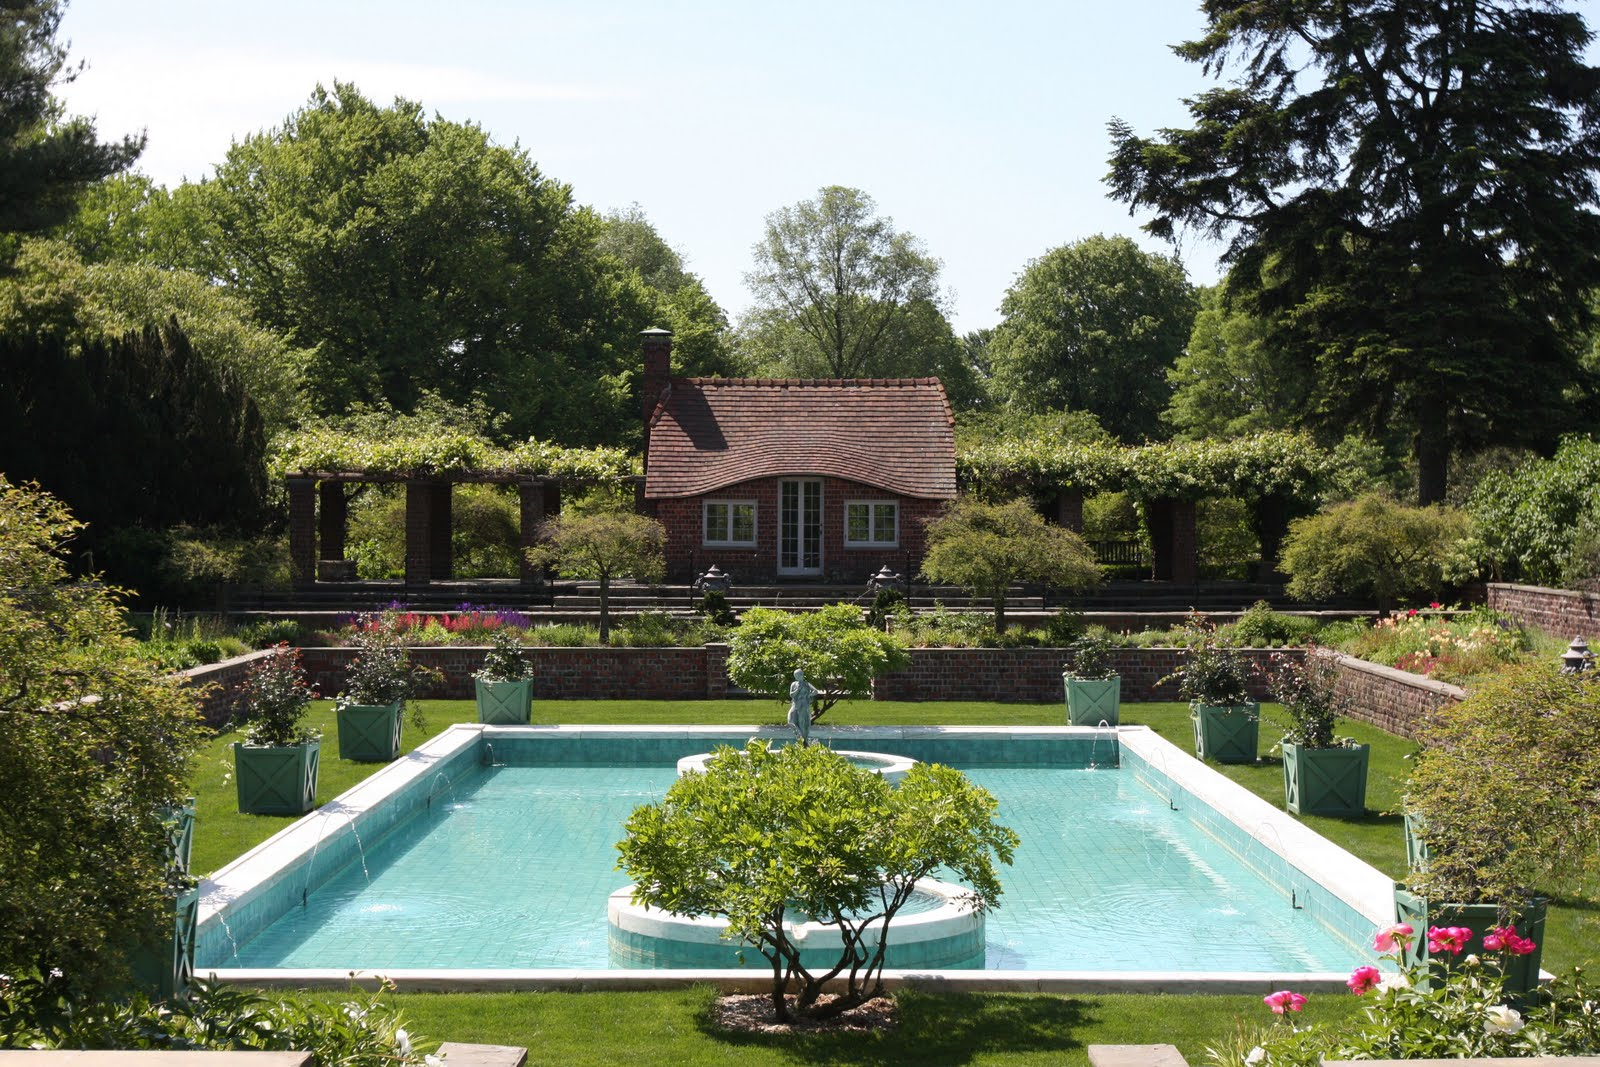 Old Long Island The Italian Blue Pool Garden At 39 Planting Fields 39